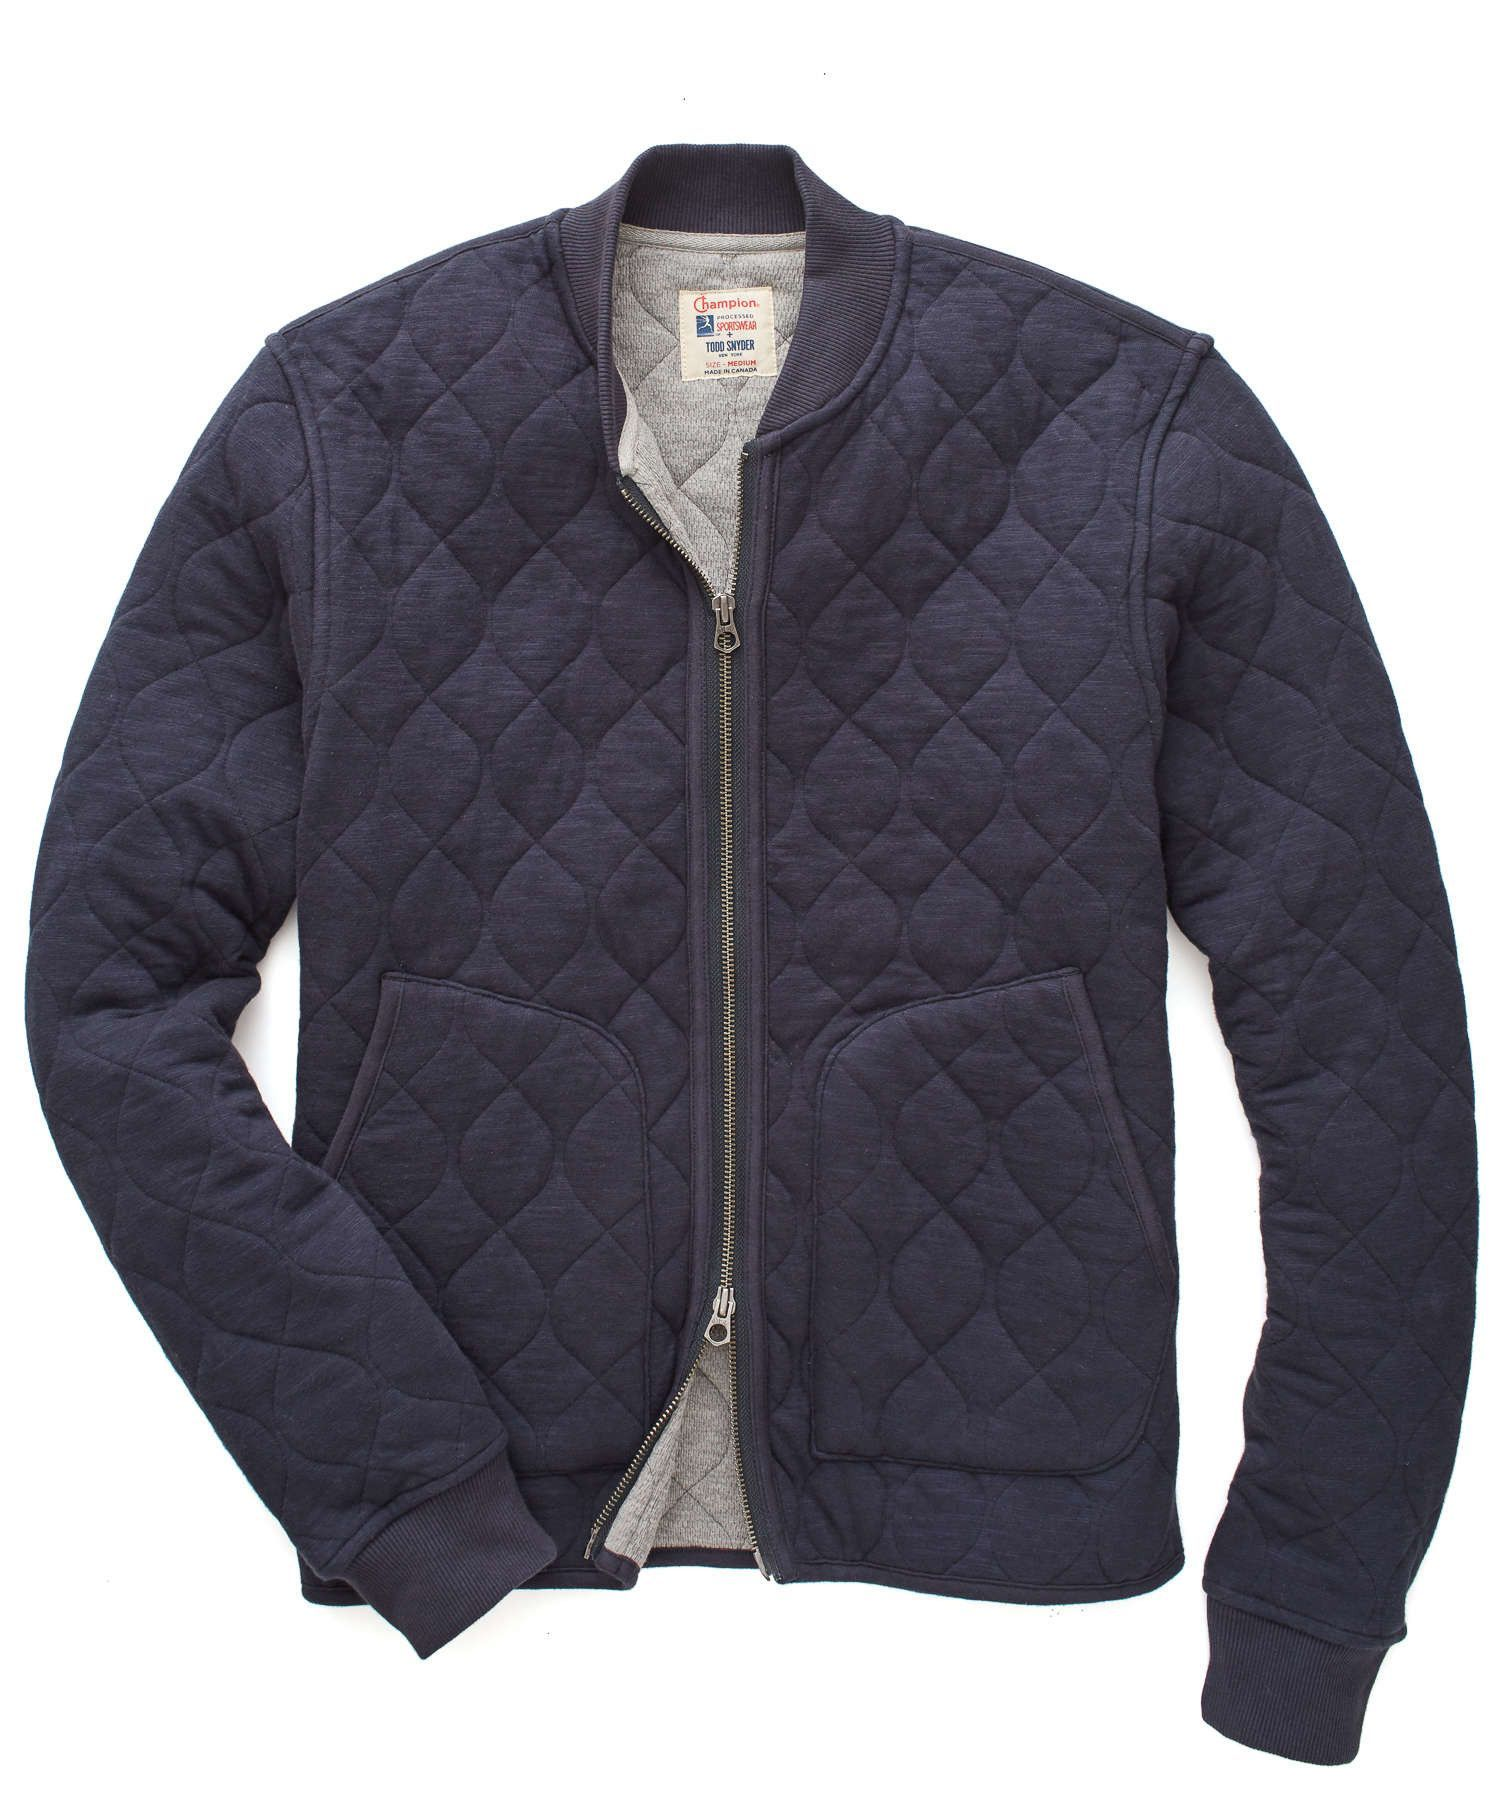 Quilted Bomber Jacket In Navy Quilted Bomber Quilted Bomber Jacket Todd Snyder Champion